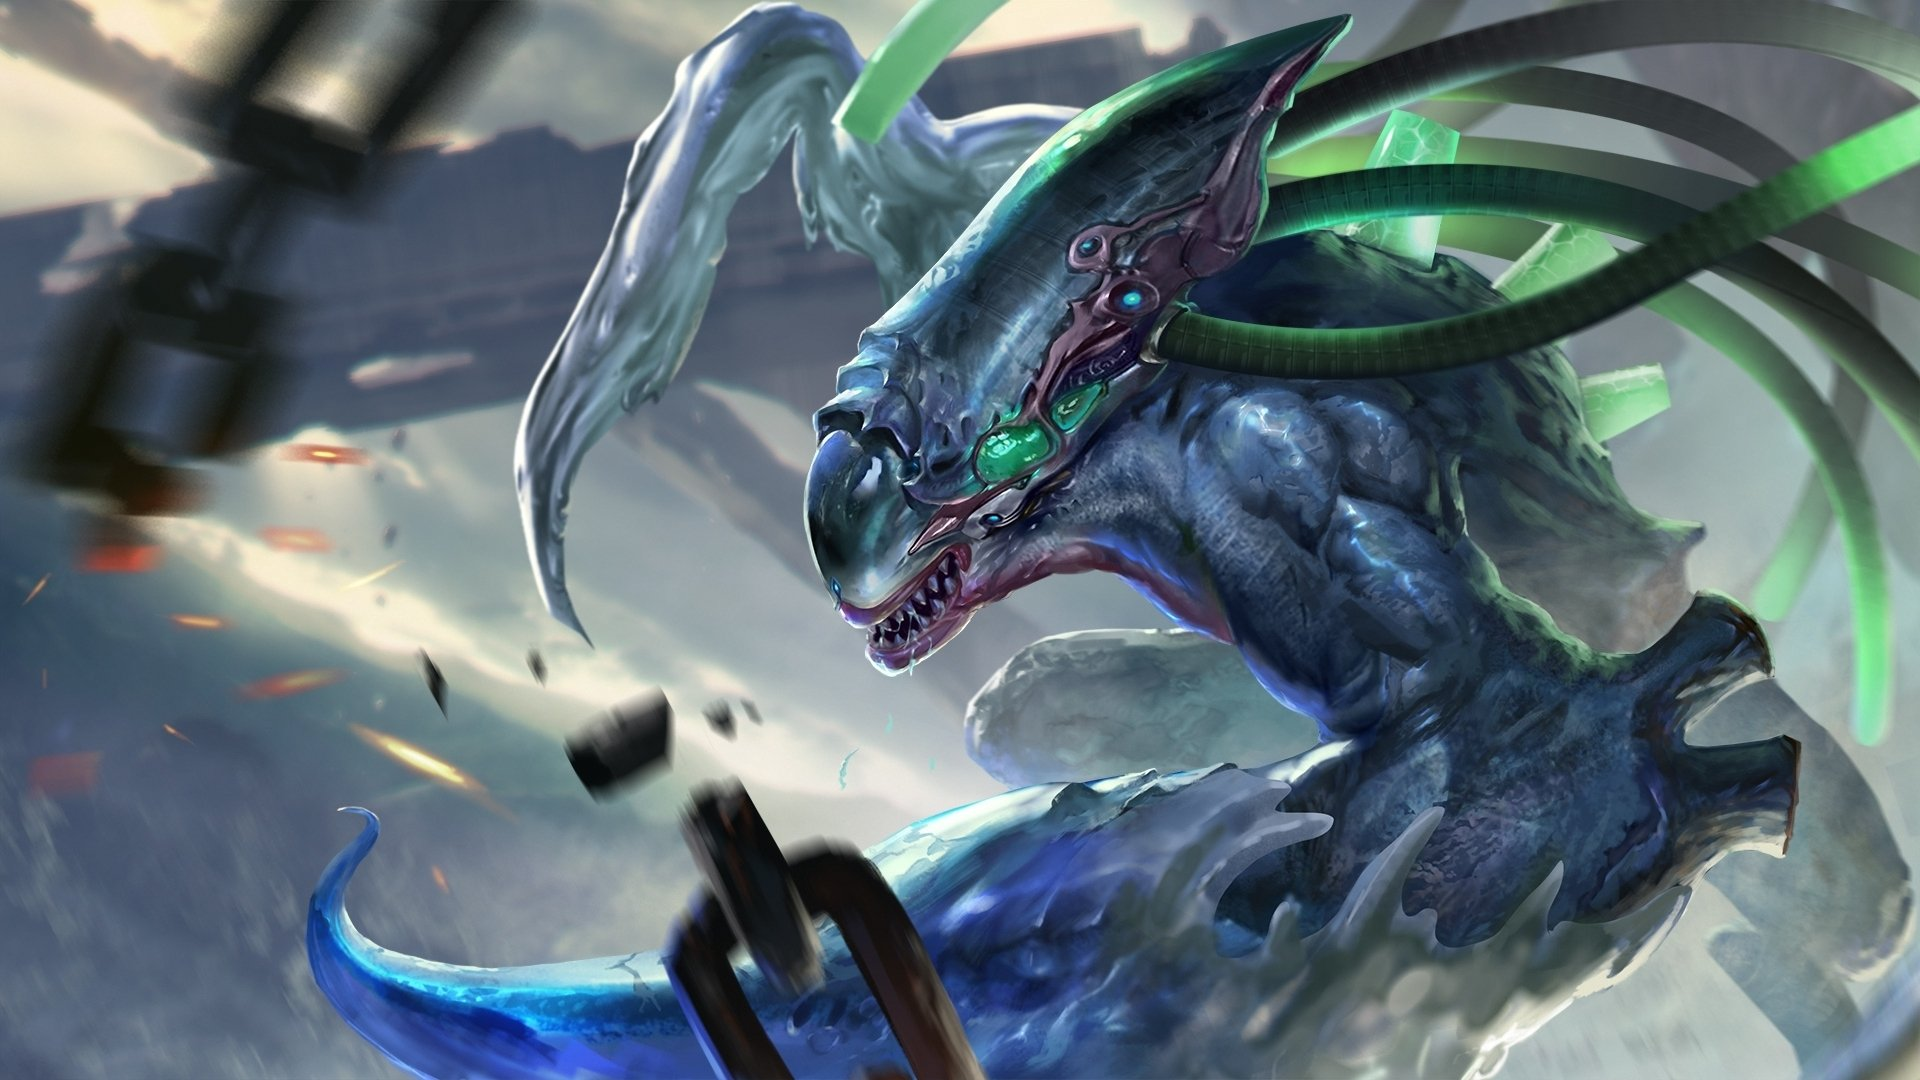 Video Game - Heroes Of Newerth  Creature Wallpaper